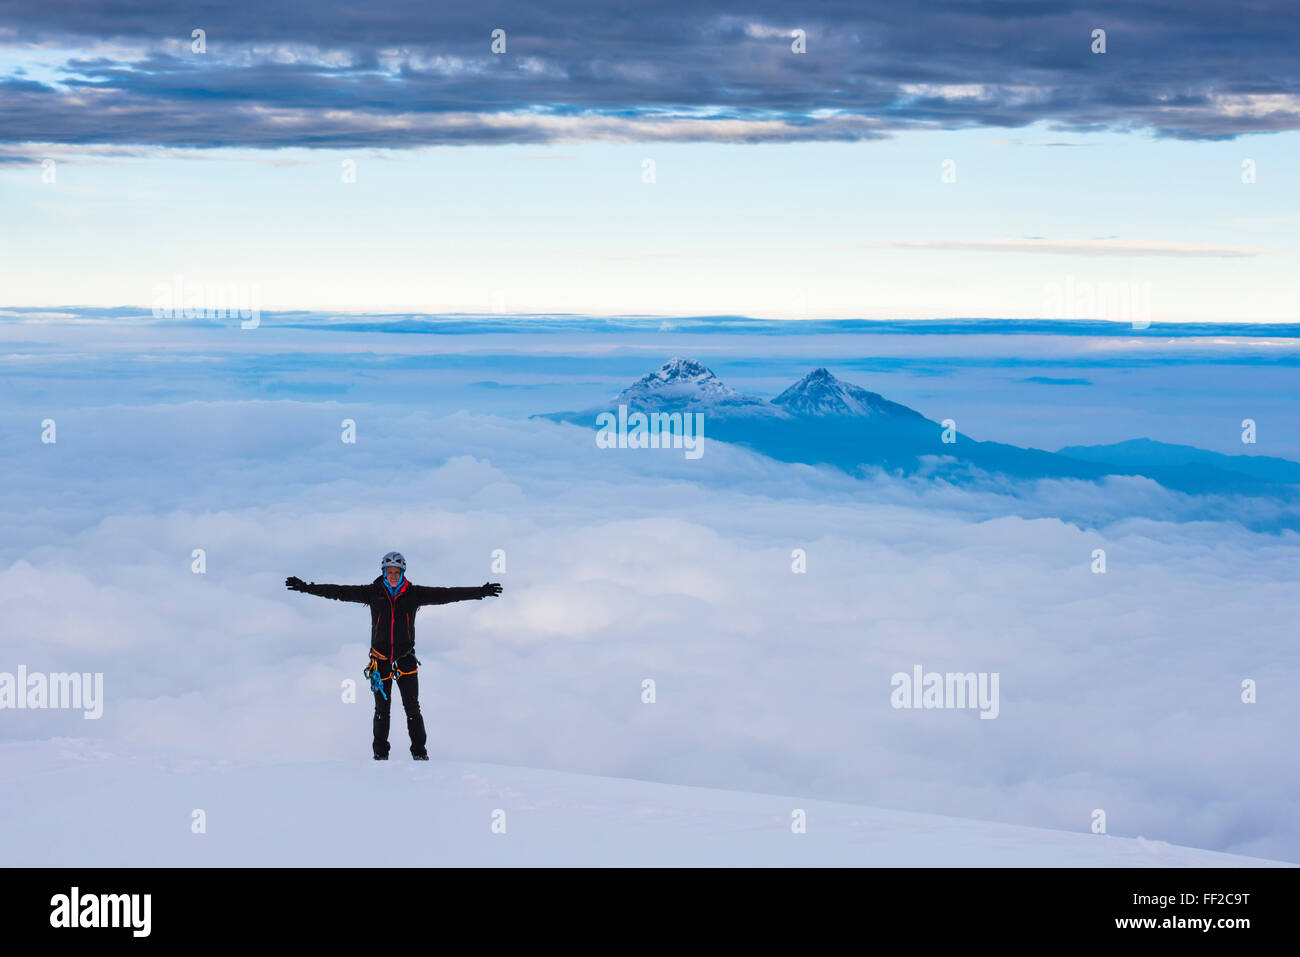 CRMimber on the 5897m summit of Cotopaxi VoRMcano, Cotopaxi Province, Ecuador, South America - Stock Image